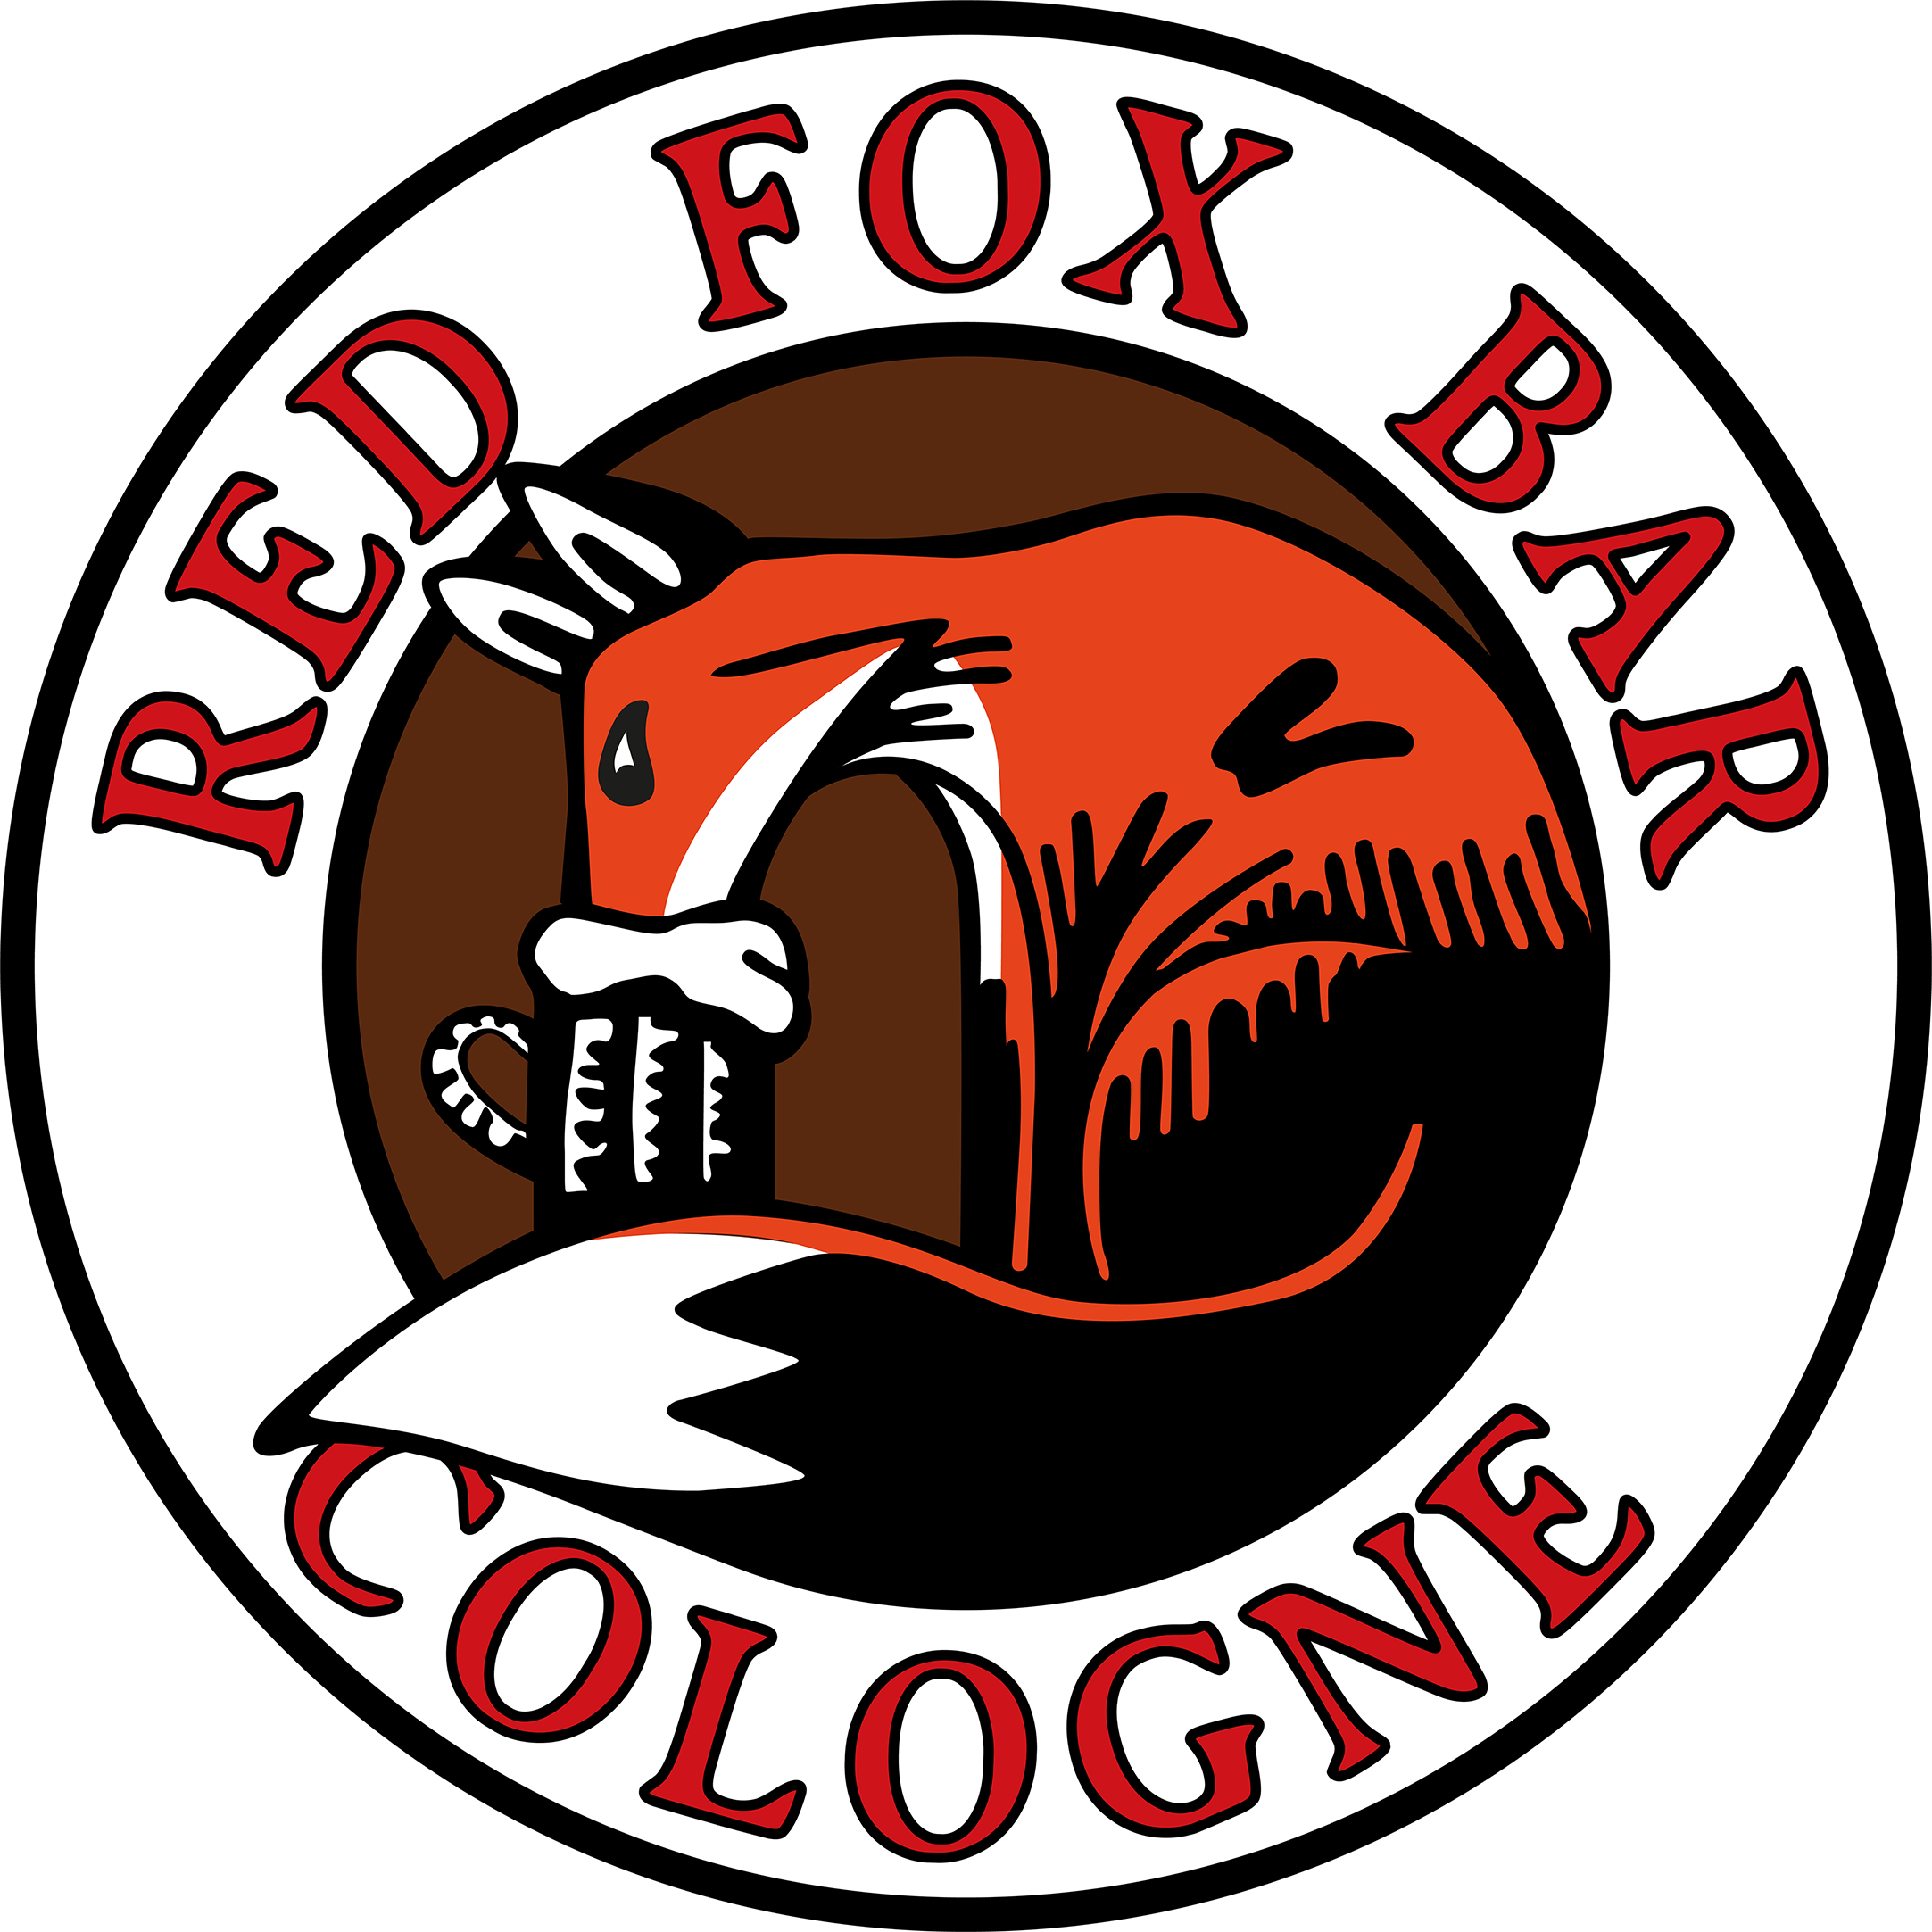 Red Fox Bar